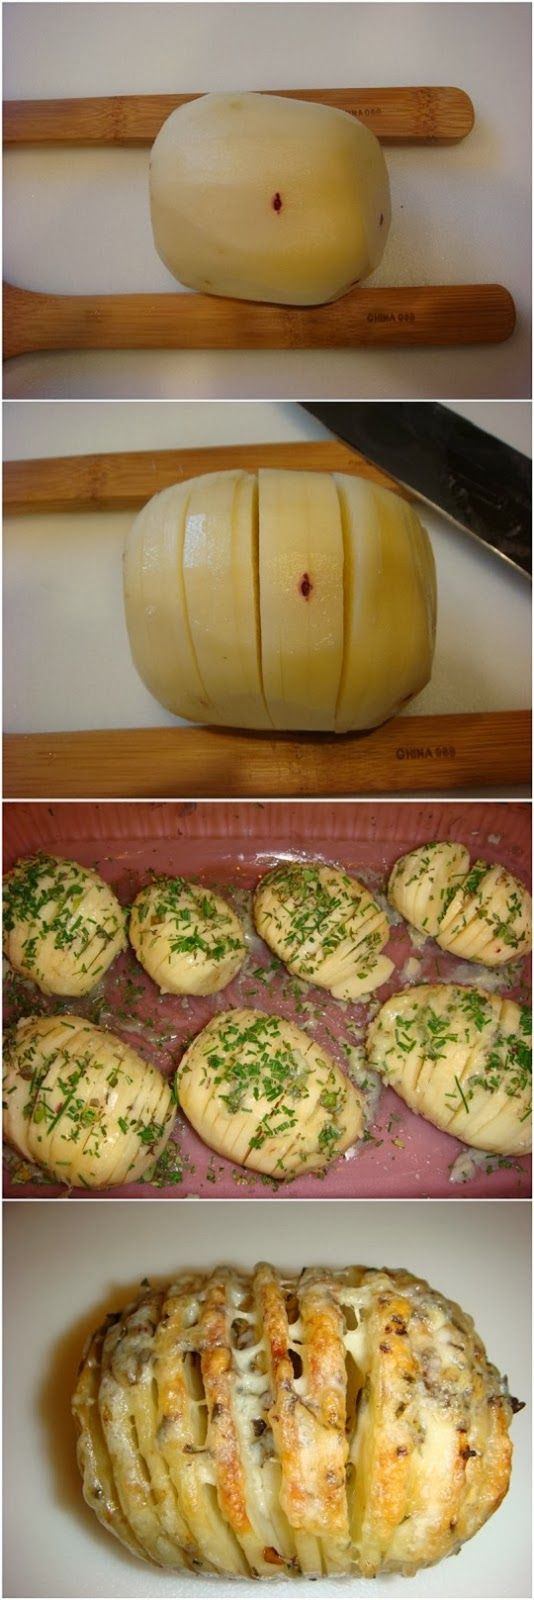 Sliced Baked Potatoes with Herbs and Cheese.